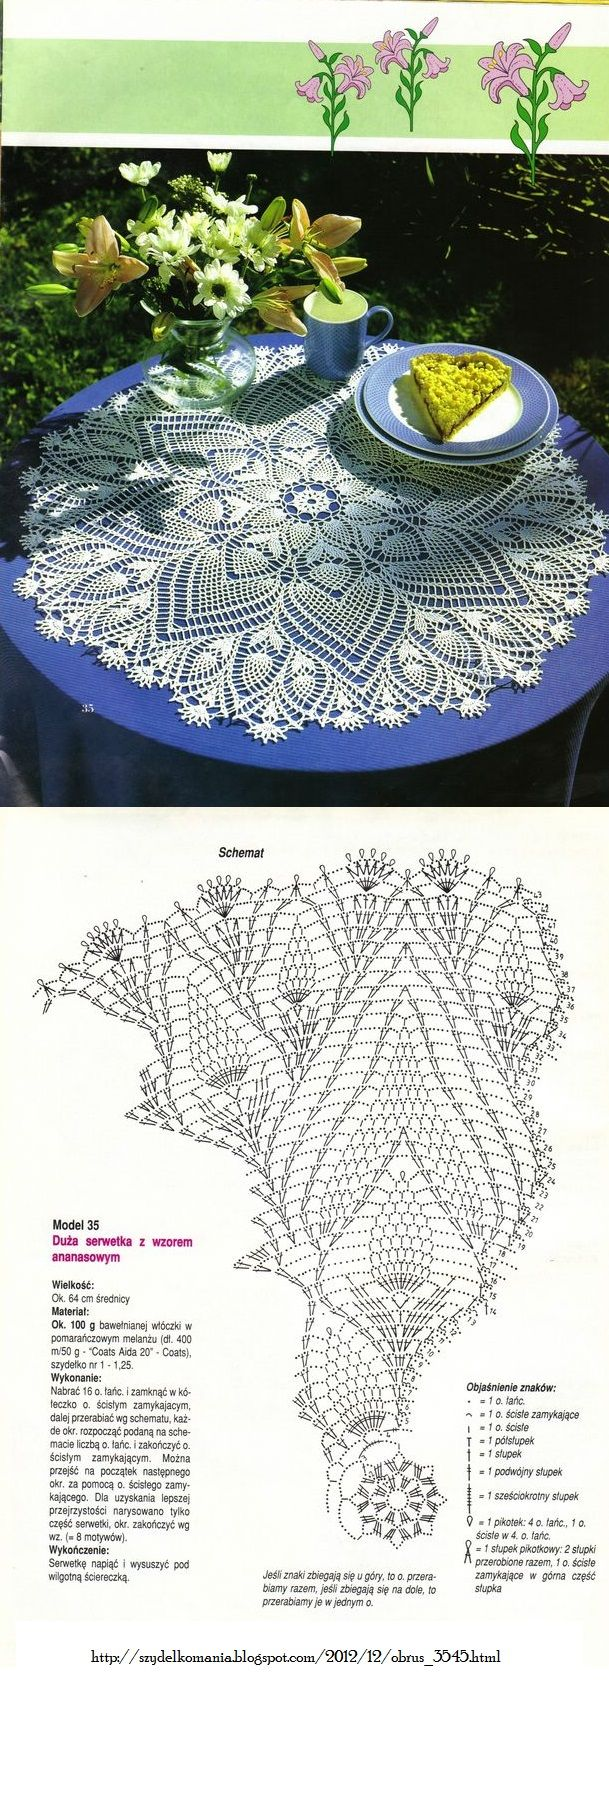 96 inch round tablecloth - Find This Pin And More On Crochet Lace Doilies Tablecloths